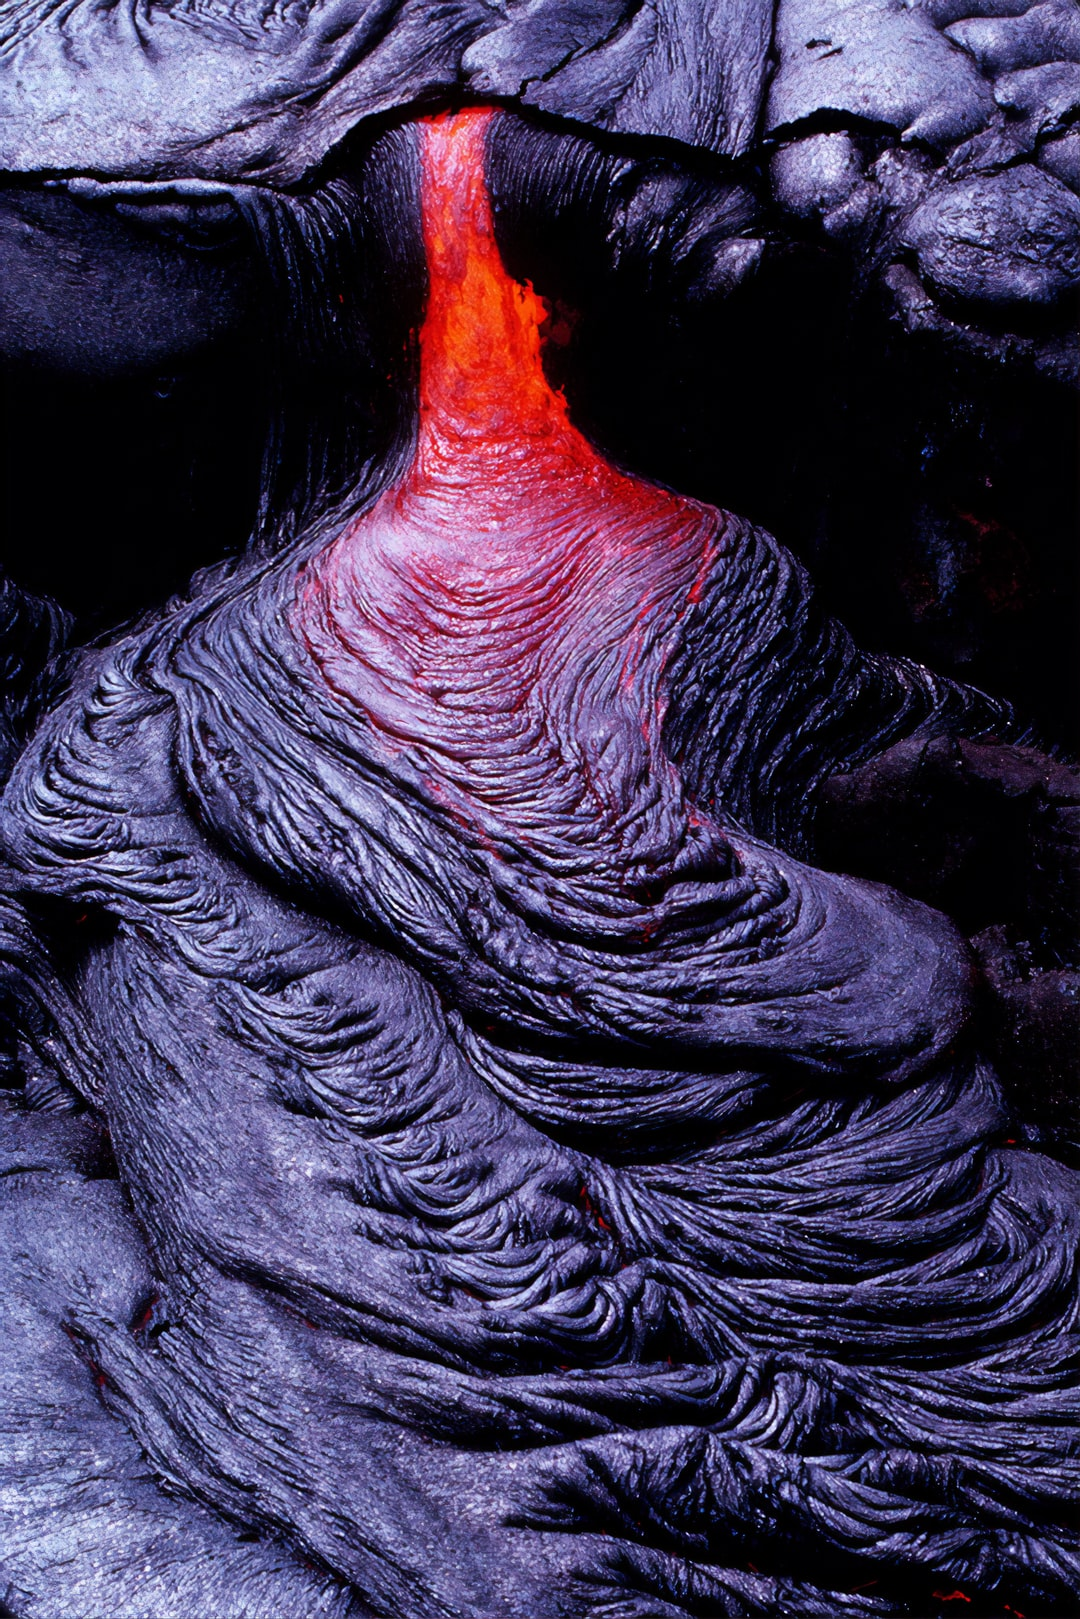 Pahoehoe ropes form in the Wahaula Lava Flow across from Wahaula Visitor Center on Hawai'i Island during the Kilauea East Rift Zone (ERZ) eruption on 6/15/89.